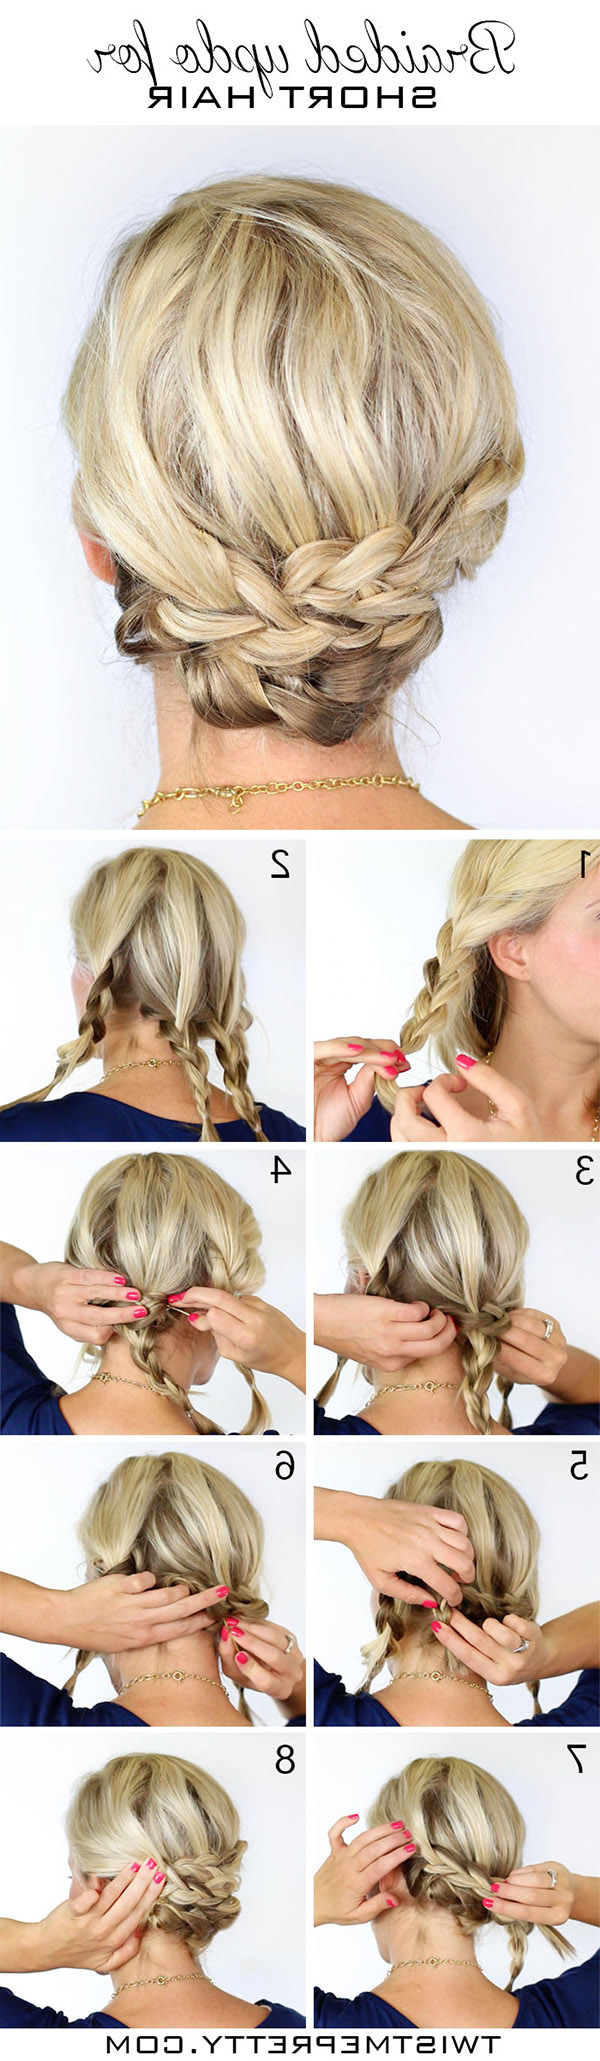 20 Diy Wedding Hairstyles With Tutorials To Try On Your Own For Trendy Bohemian Braided Bun Bridal Hairstyles For Short Hair (View 11 of 20)